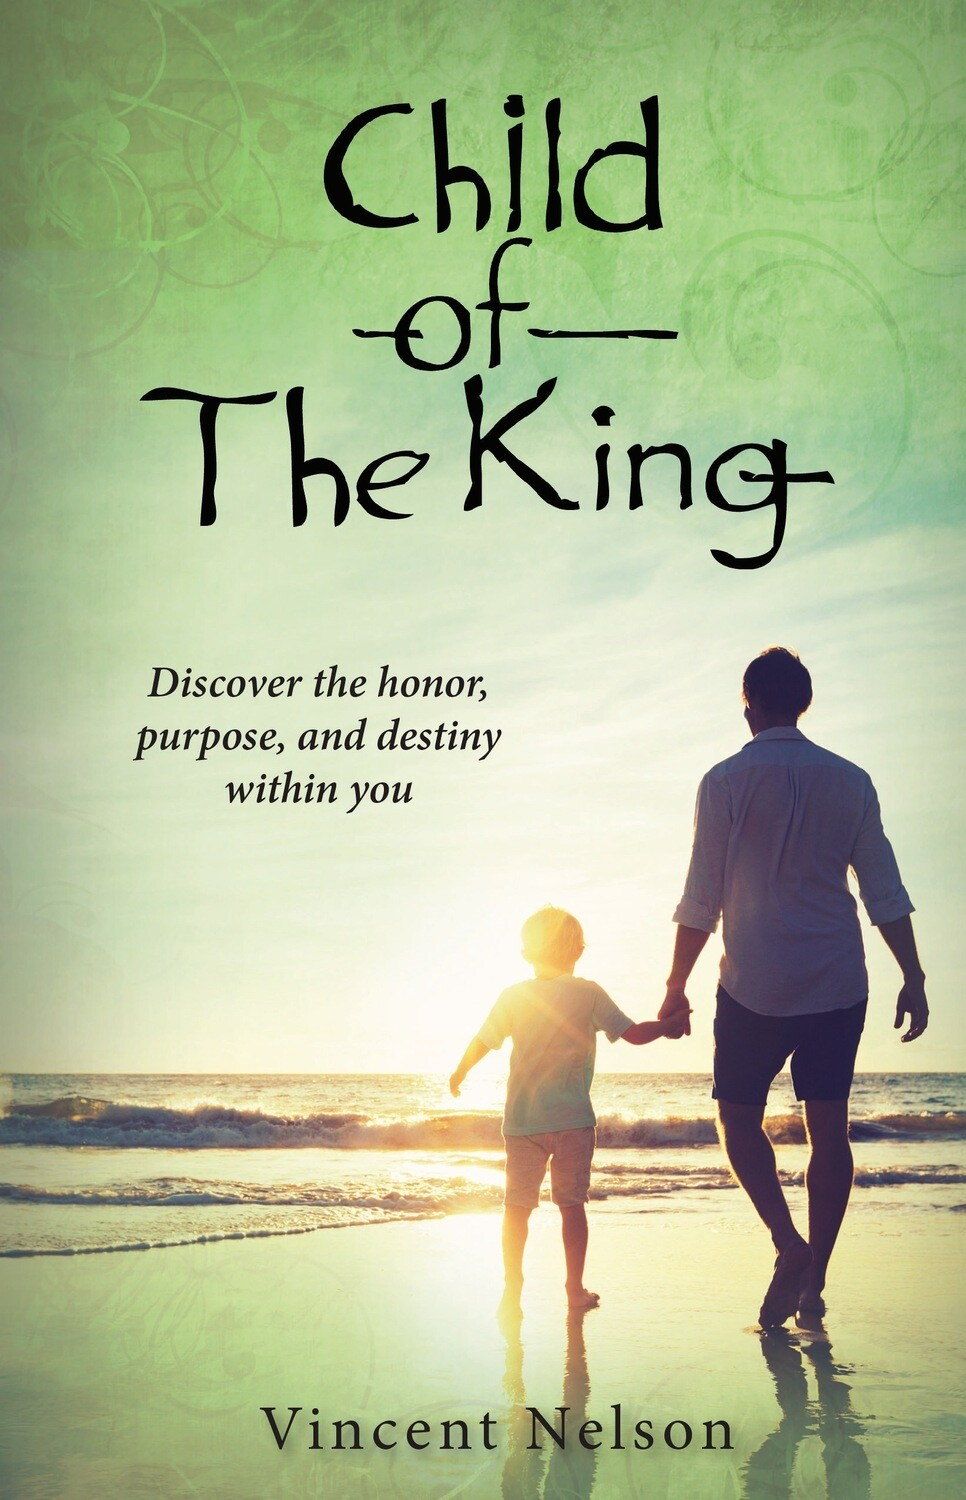 Signed Copy- Child of the King: Discover the honor, purpose, and destiny already within